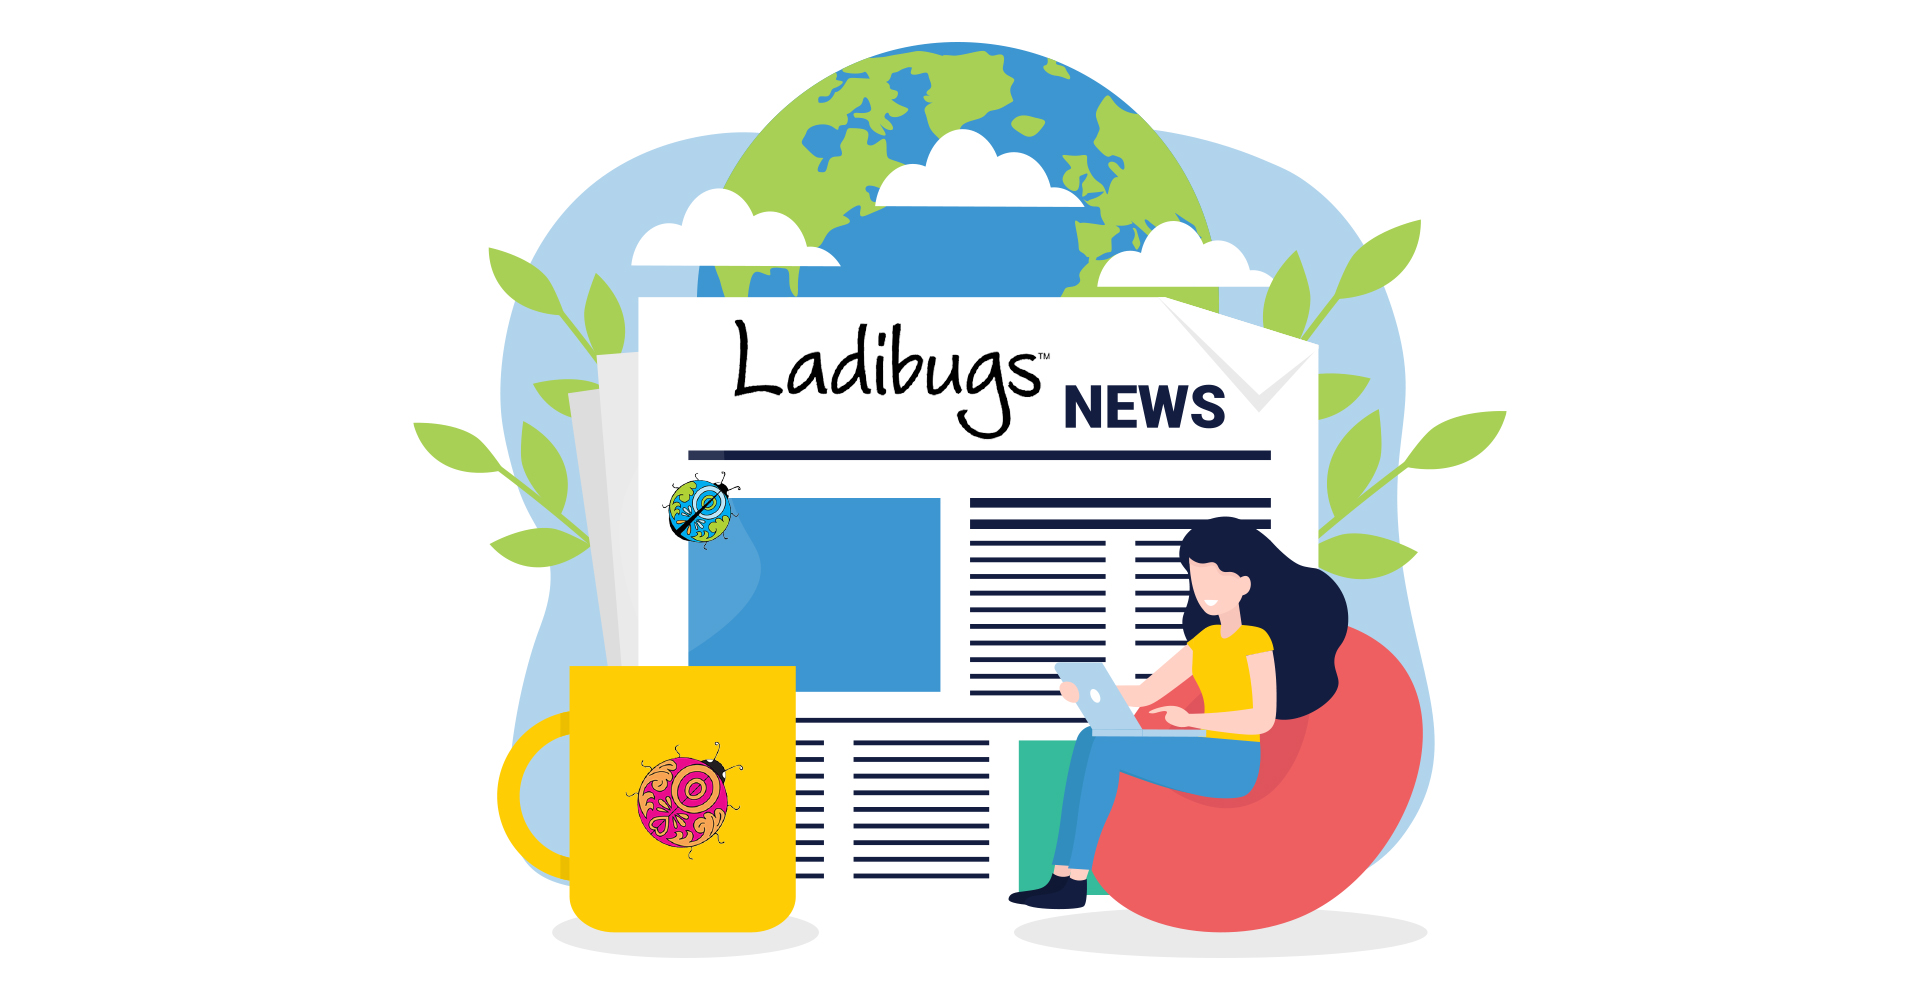 Ladibugs company news